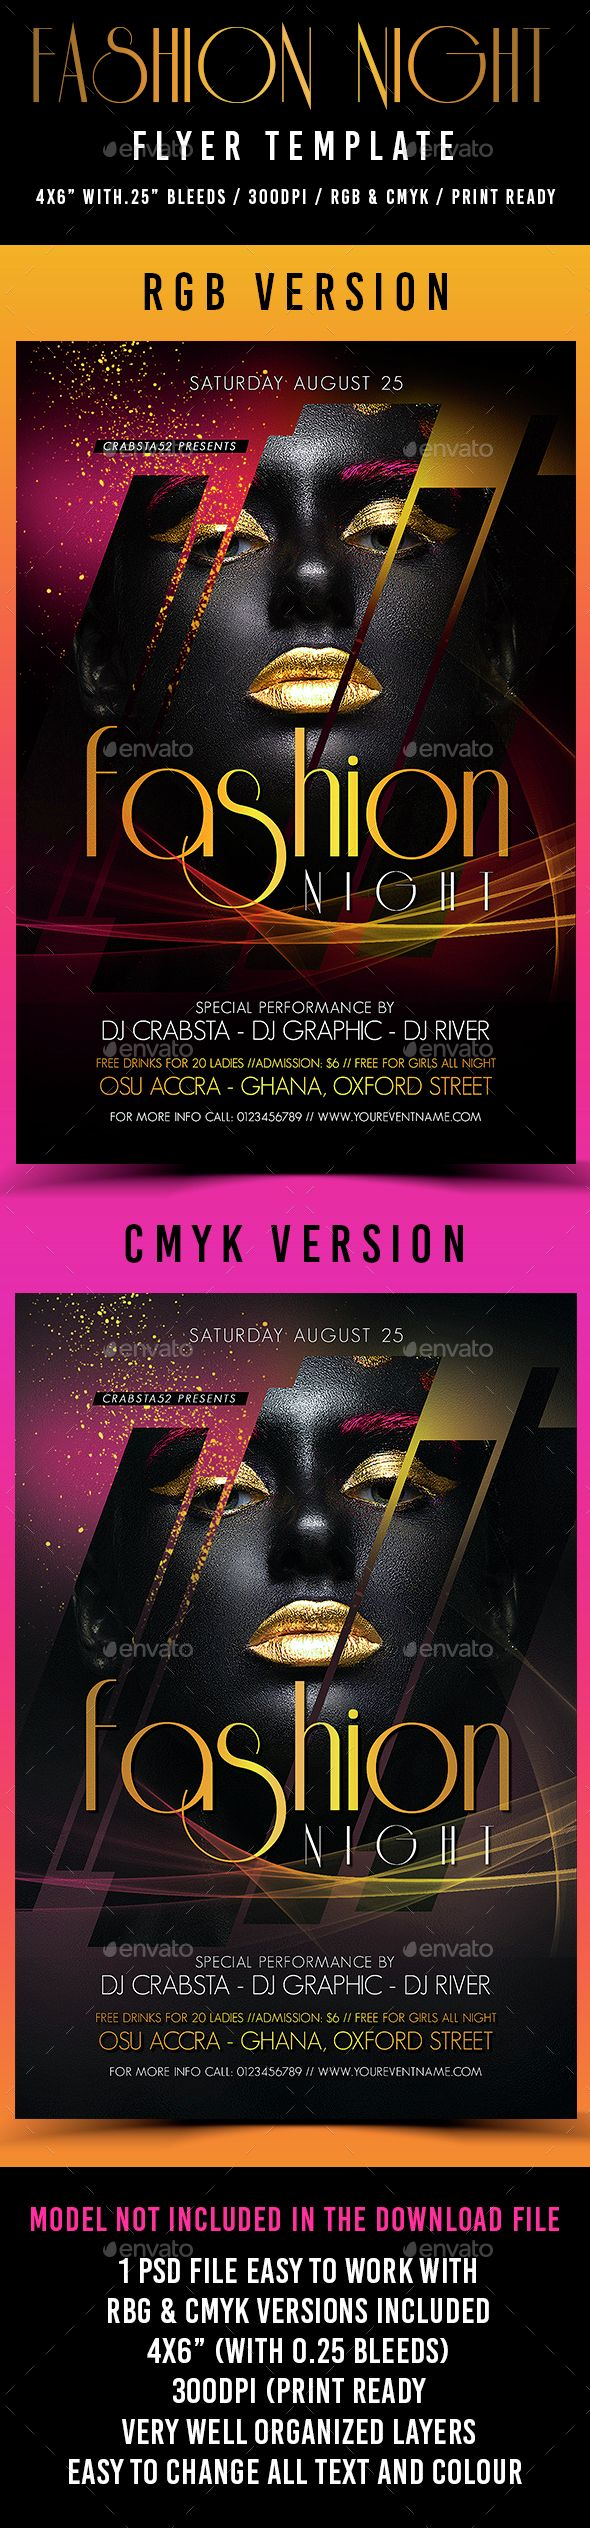 Fashion Night Flyer Template PSD. Download here: http://graphicriver.net/item/fashion-night-flyer-template/15263967?ref=ksioks